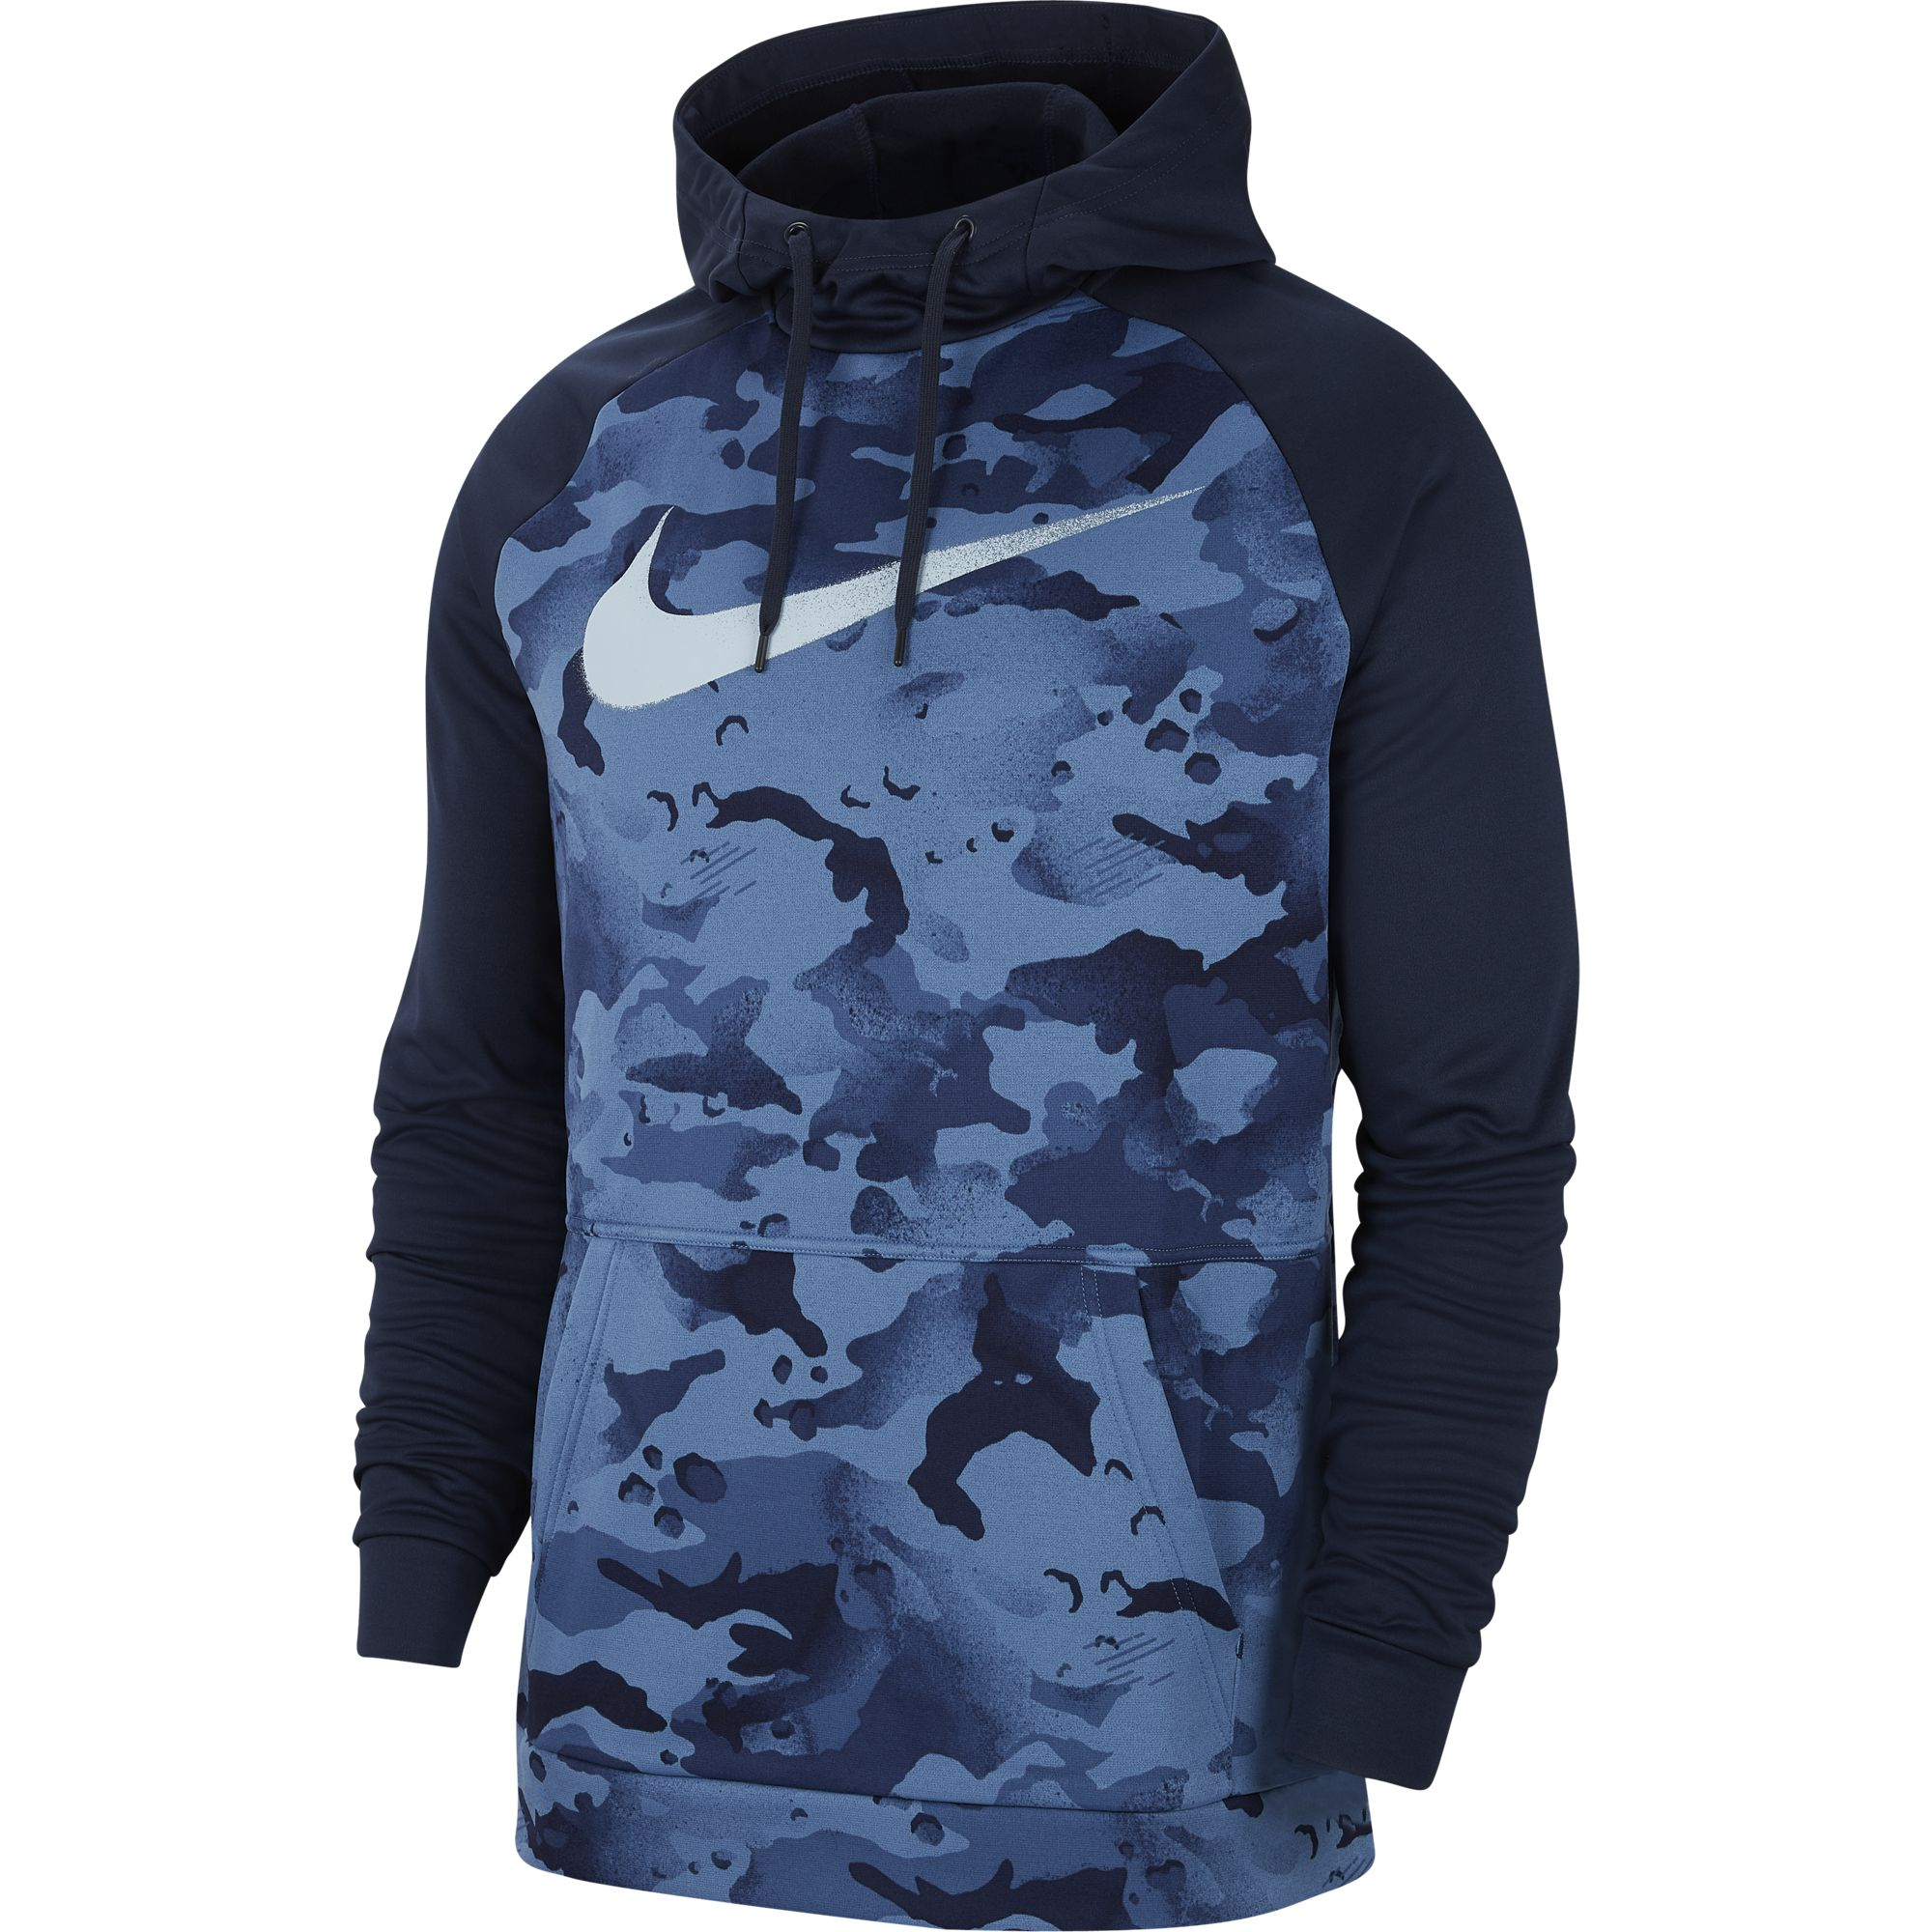 Men's Pullover Training Hoodie, Navy, swatch